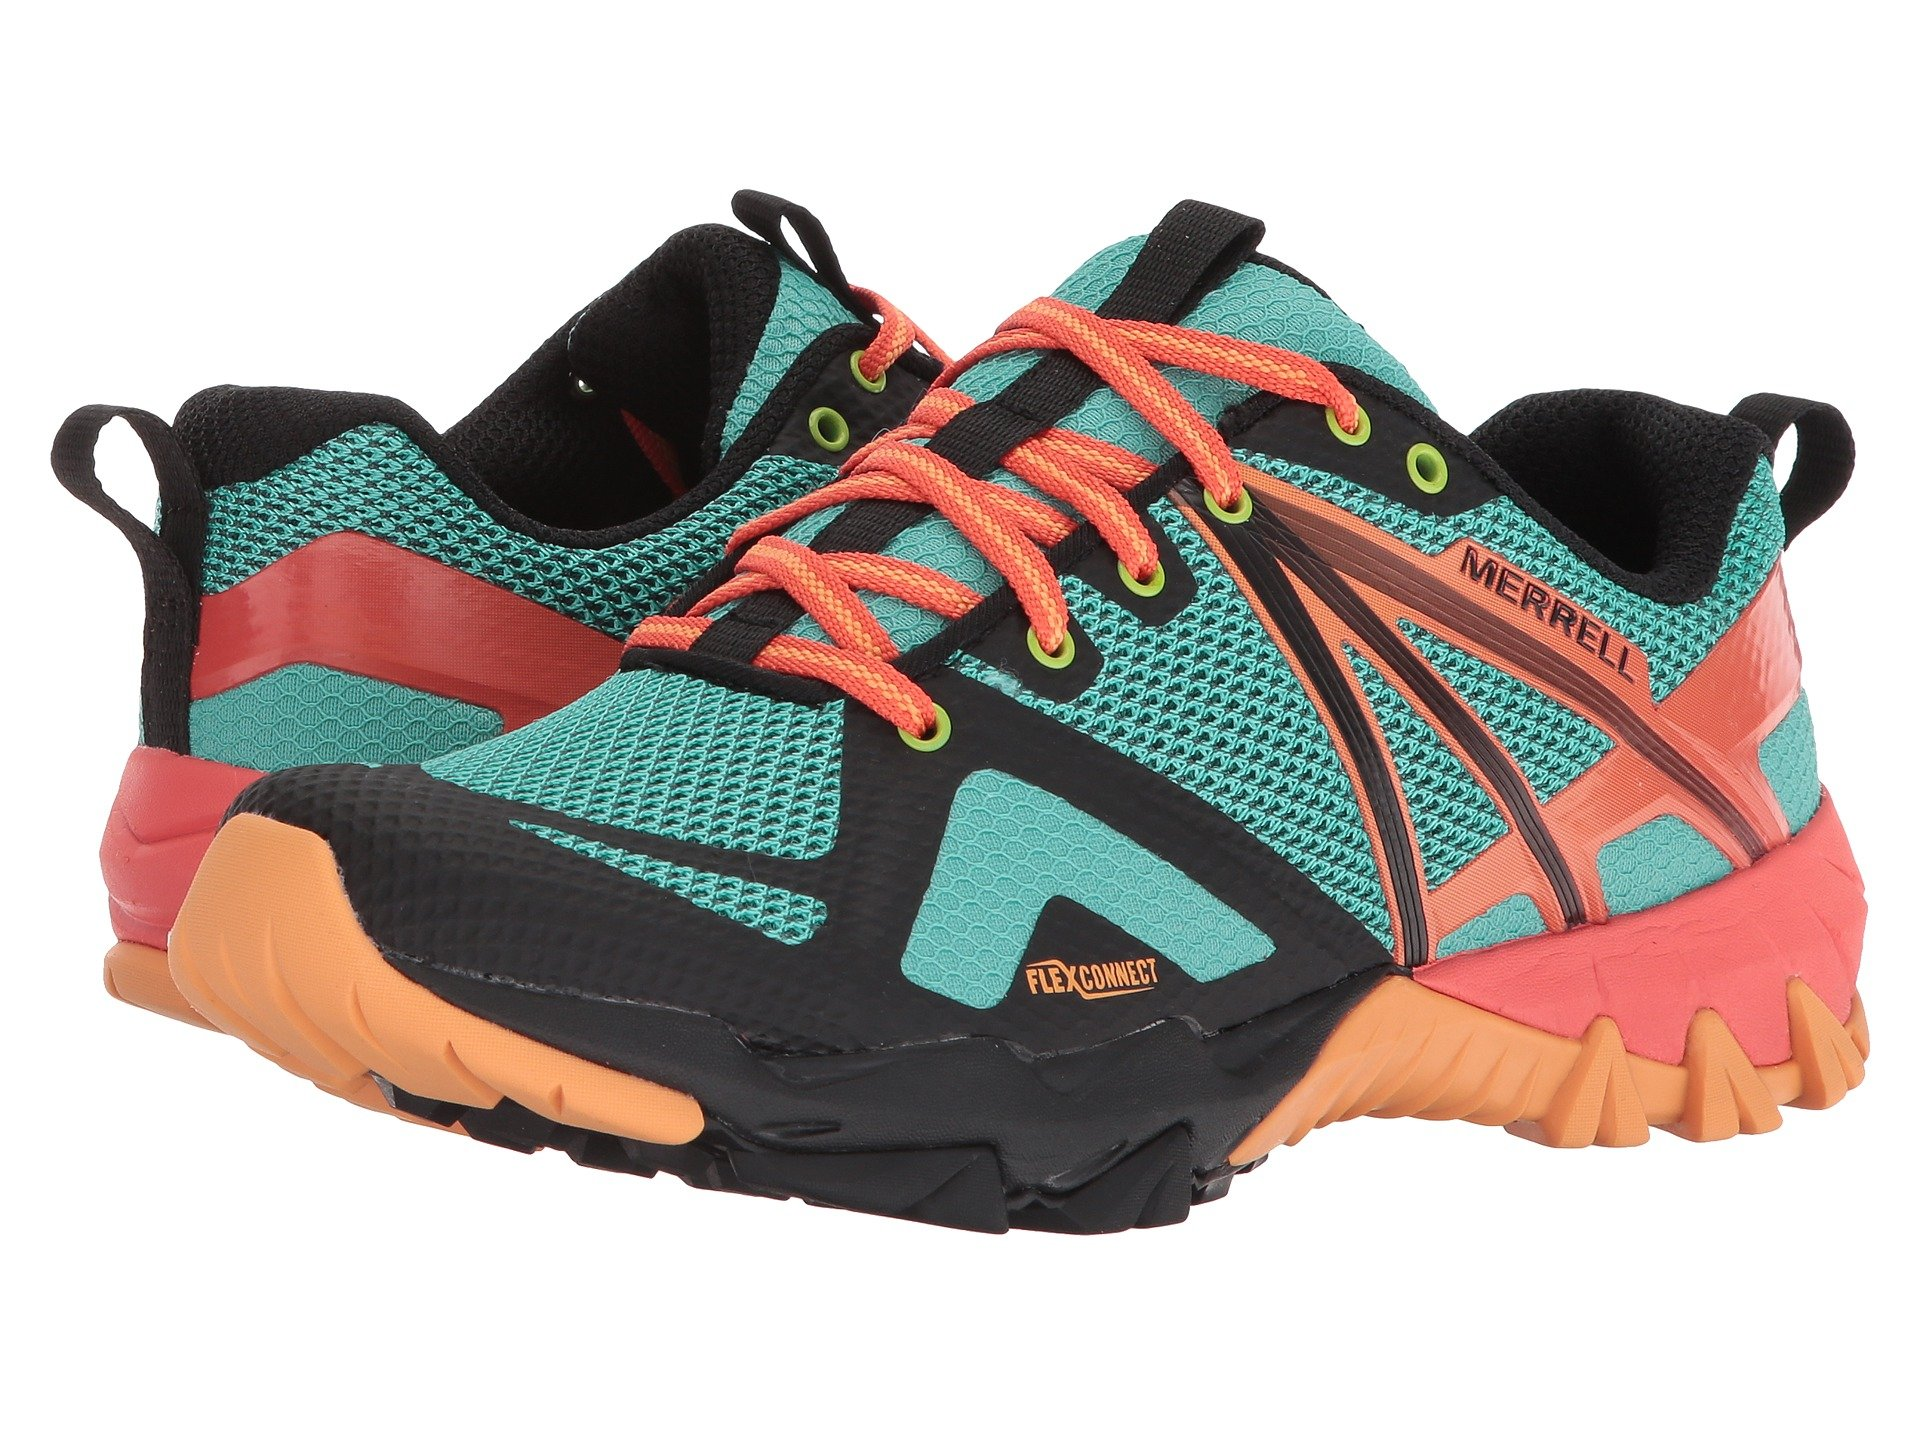 e869596777f Women s Merrell Sneakers   Athletic Shoes + FREE SHIPPING